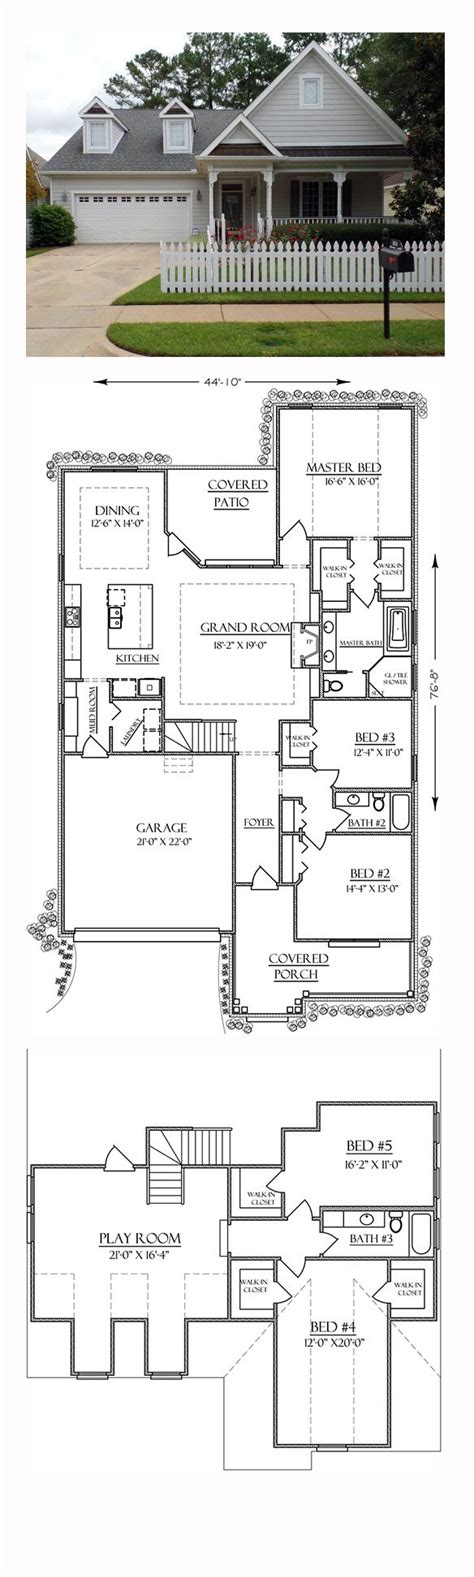 home design blueprints best 25 5 bedroom house plans ideas on pinterest 4